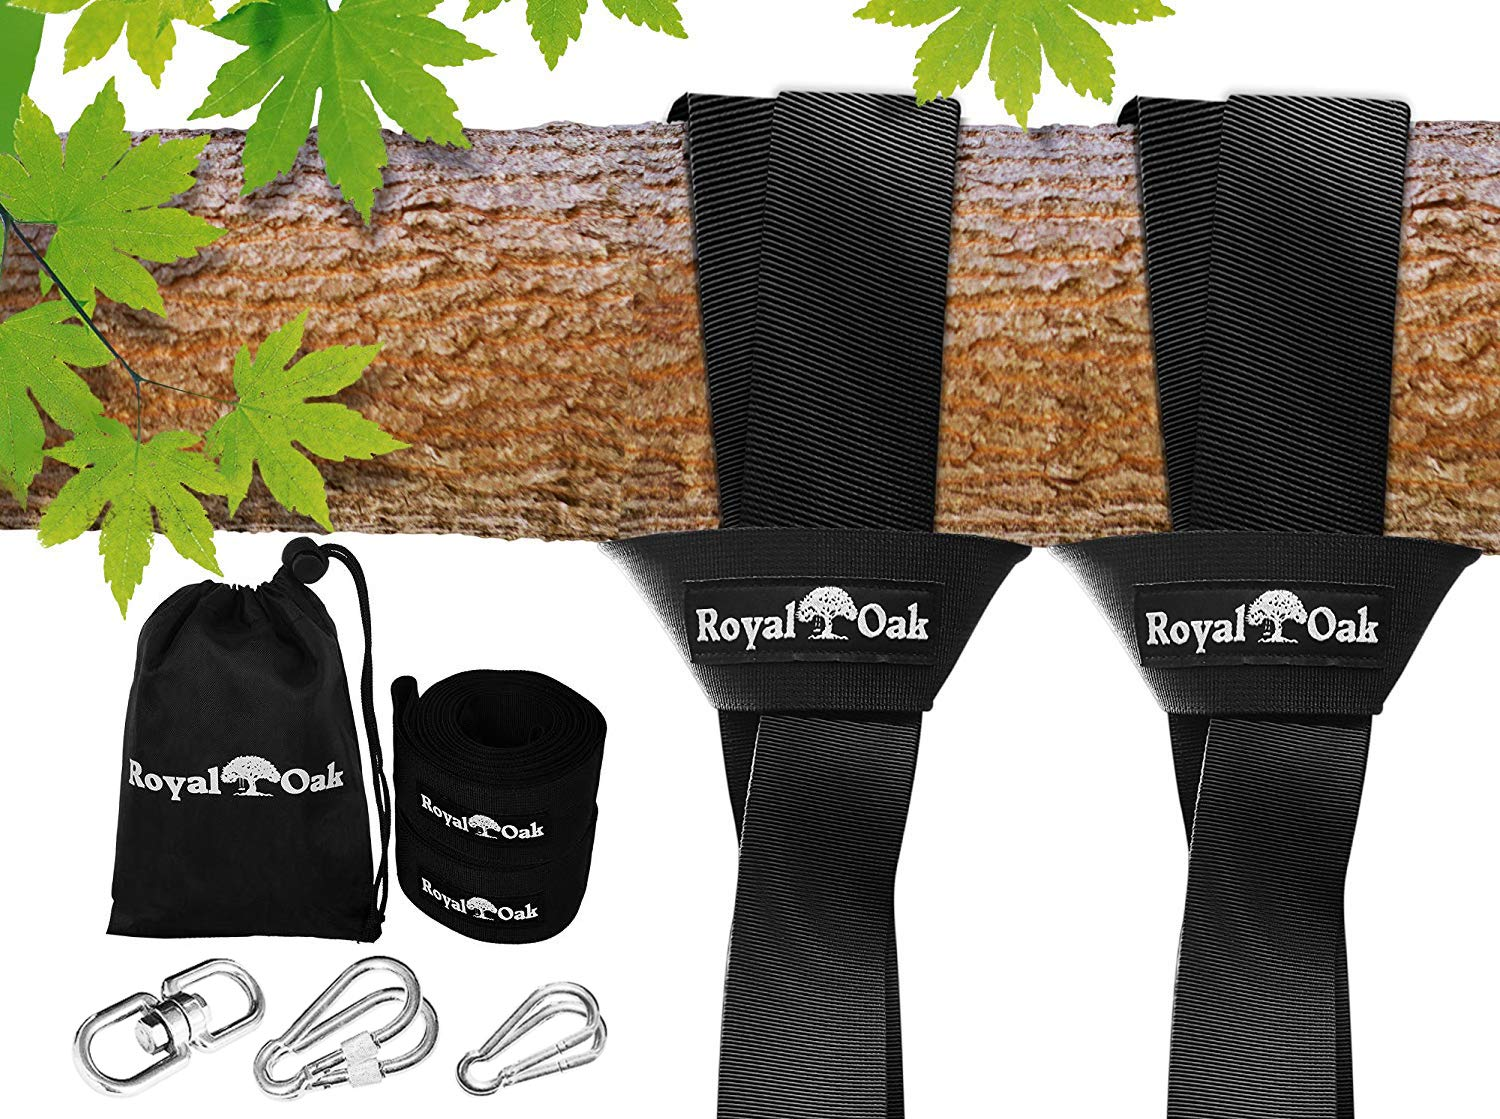 Royal Oak Easy Hang (12FT) Tree Swing Strap X2 - Holds 4400lbs. - Heavy Duty Carabiner - Bonus Spinner - Perfect Tire Saucer Swings - 100% Waterproof - Easy Picture Instructions - Carry Bag Included! by Royal Oak